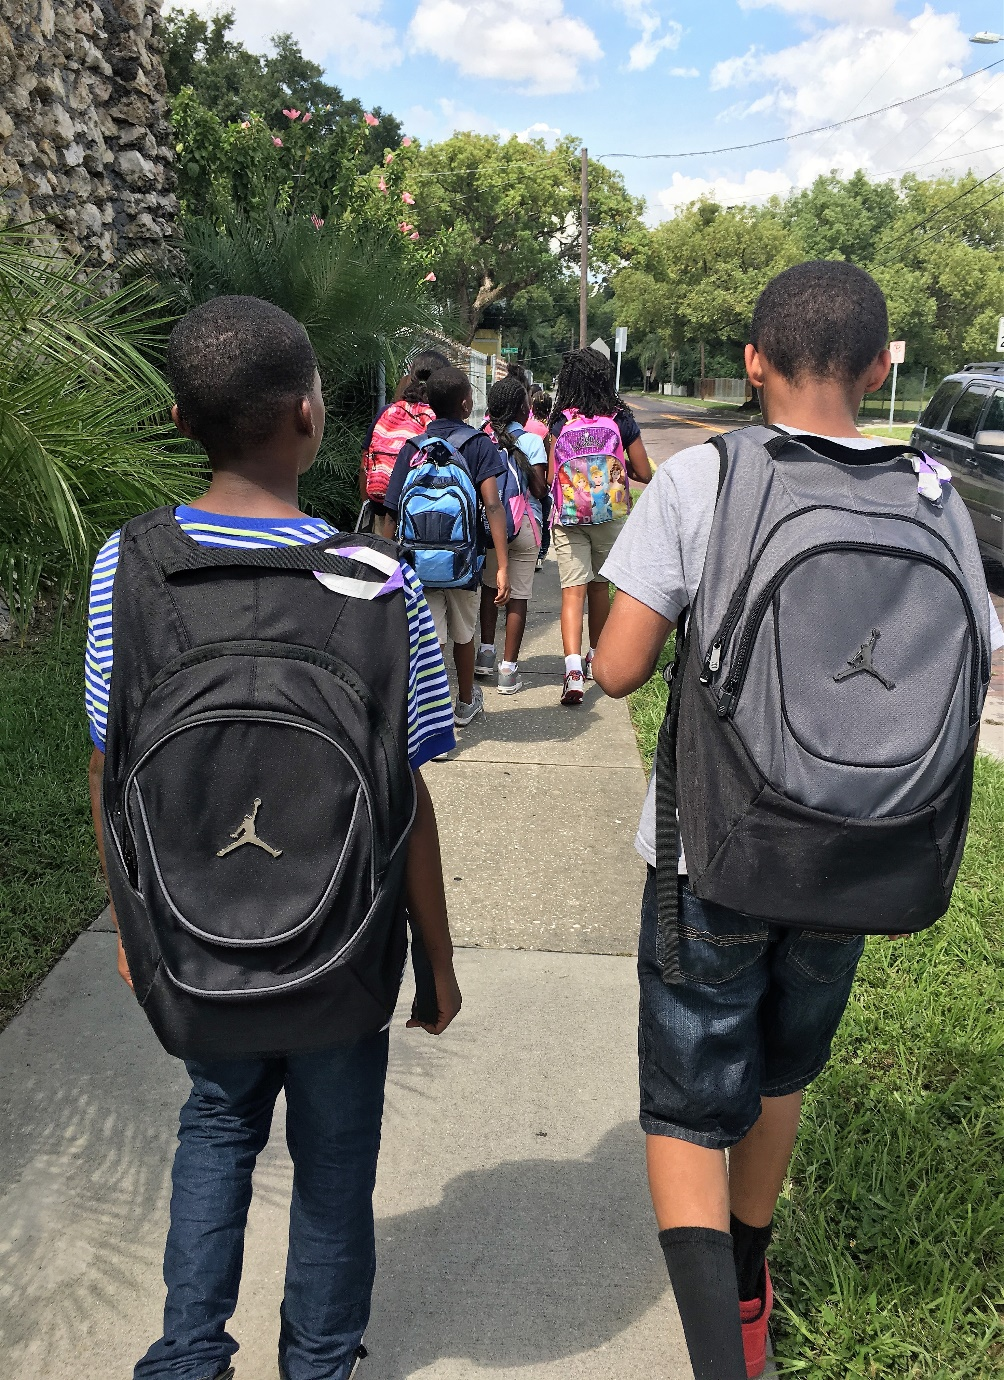 Students outside with backpacks.